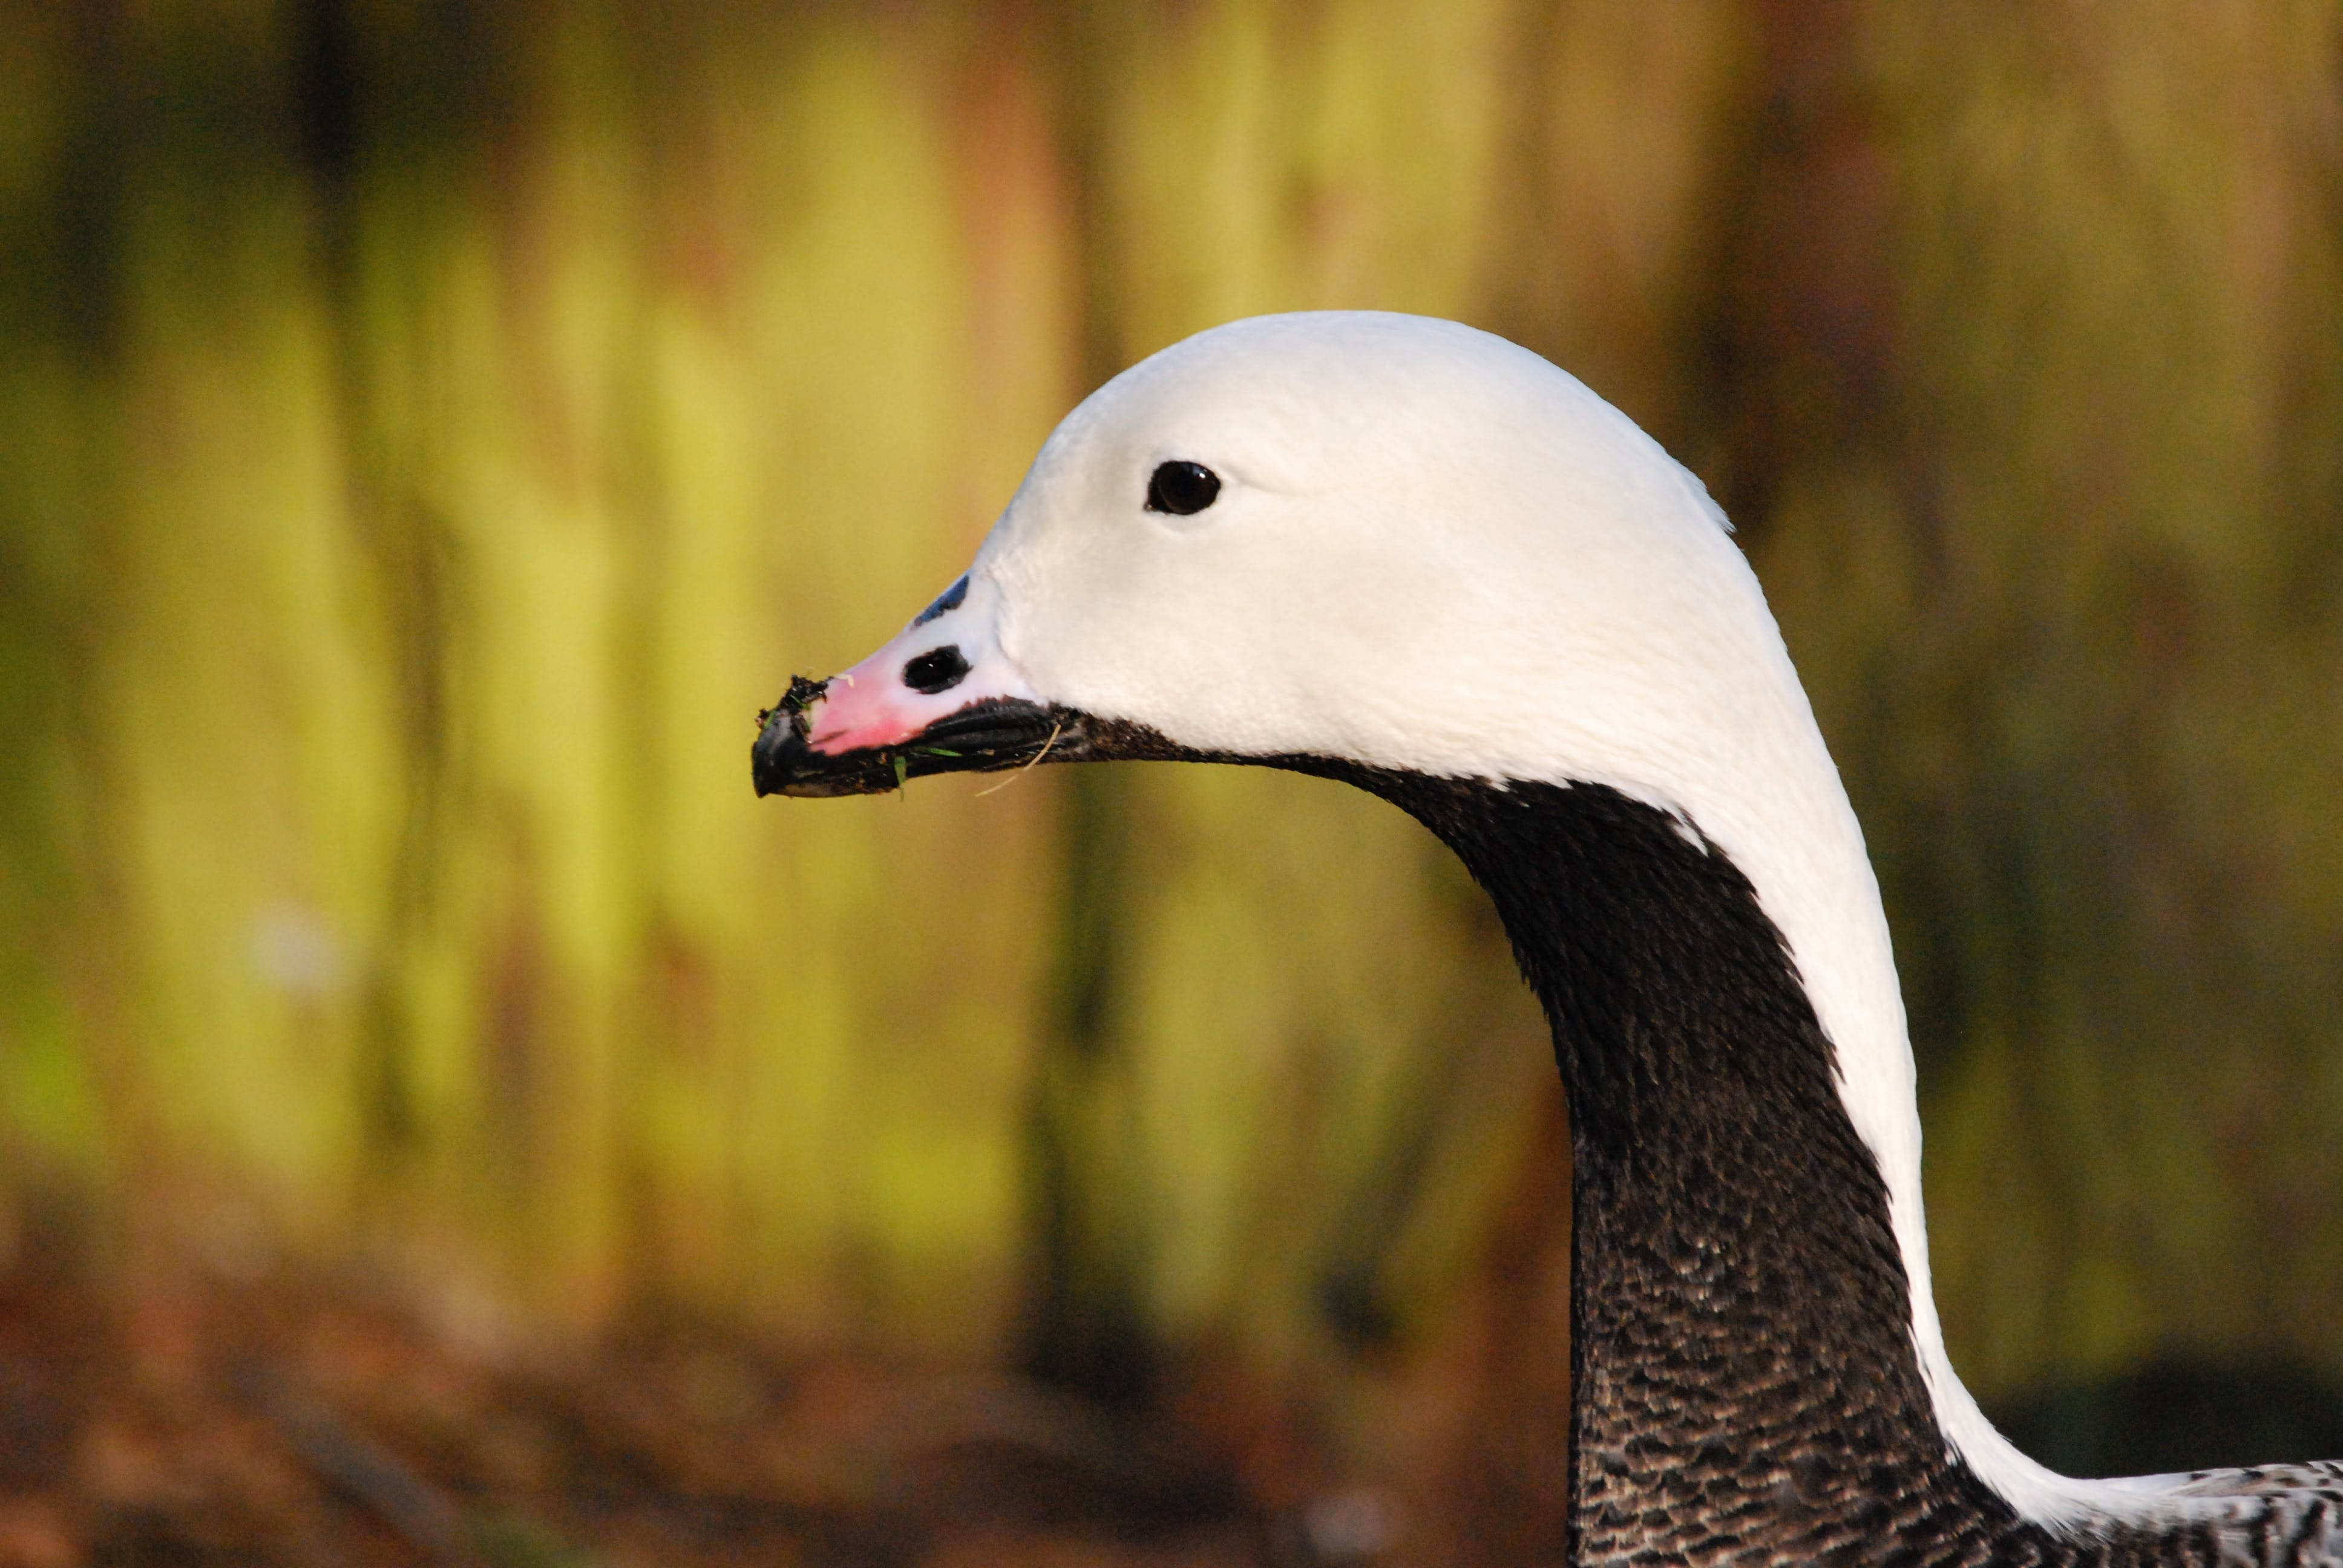 Black and White Duck Close Up Photo